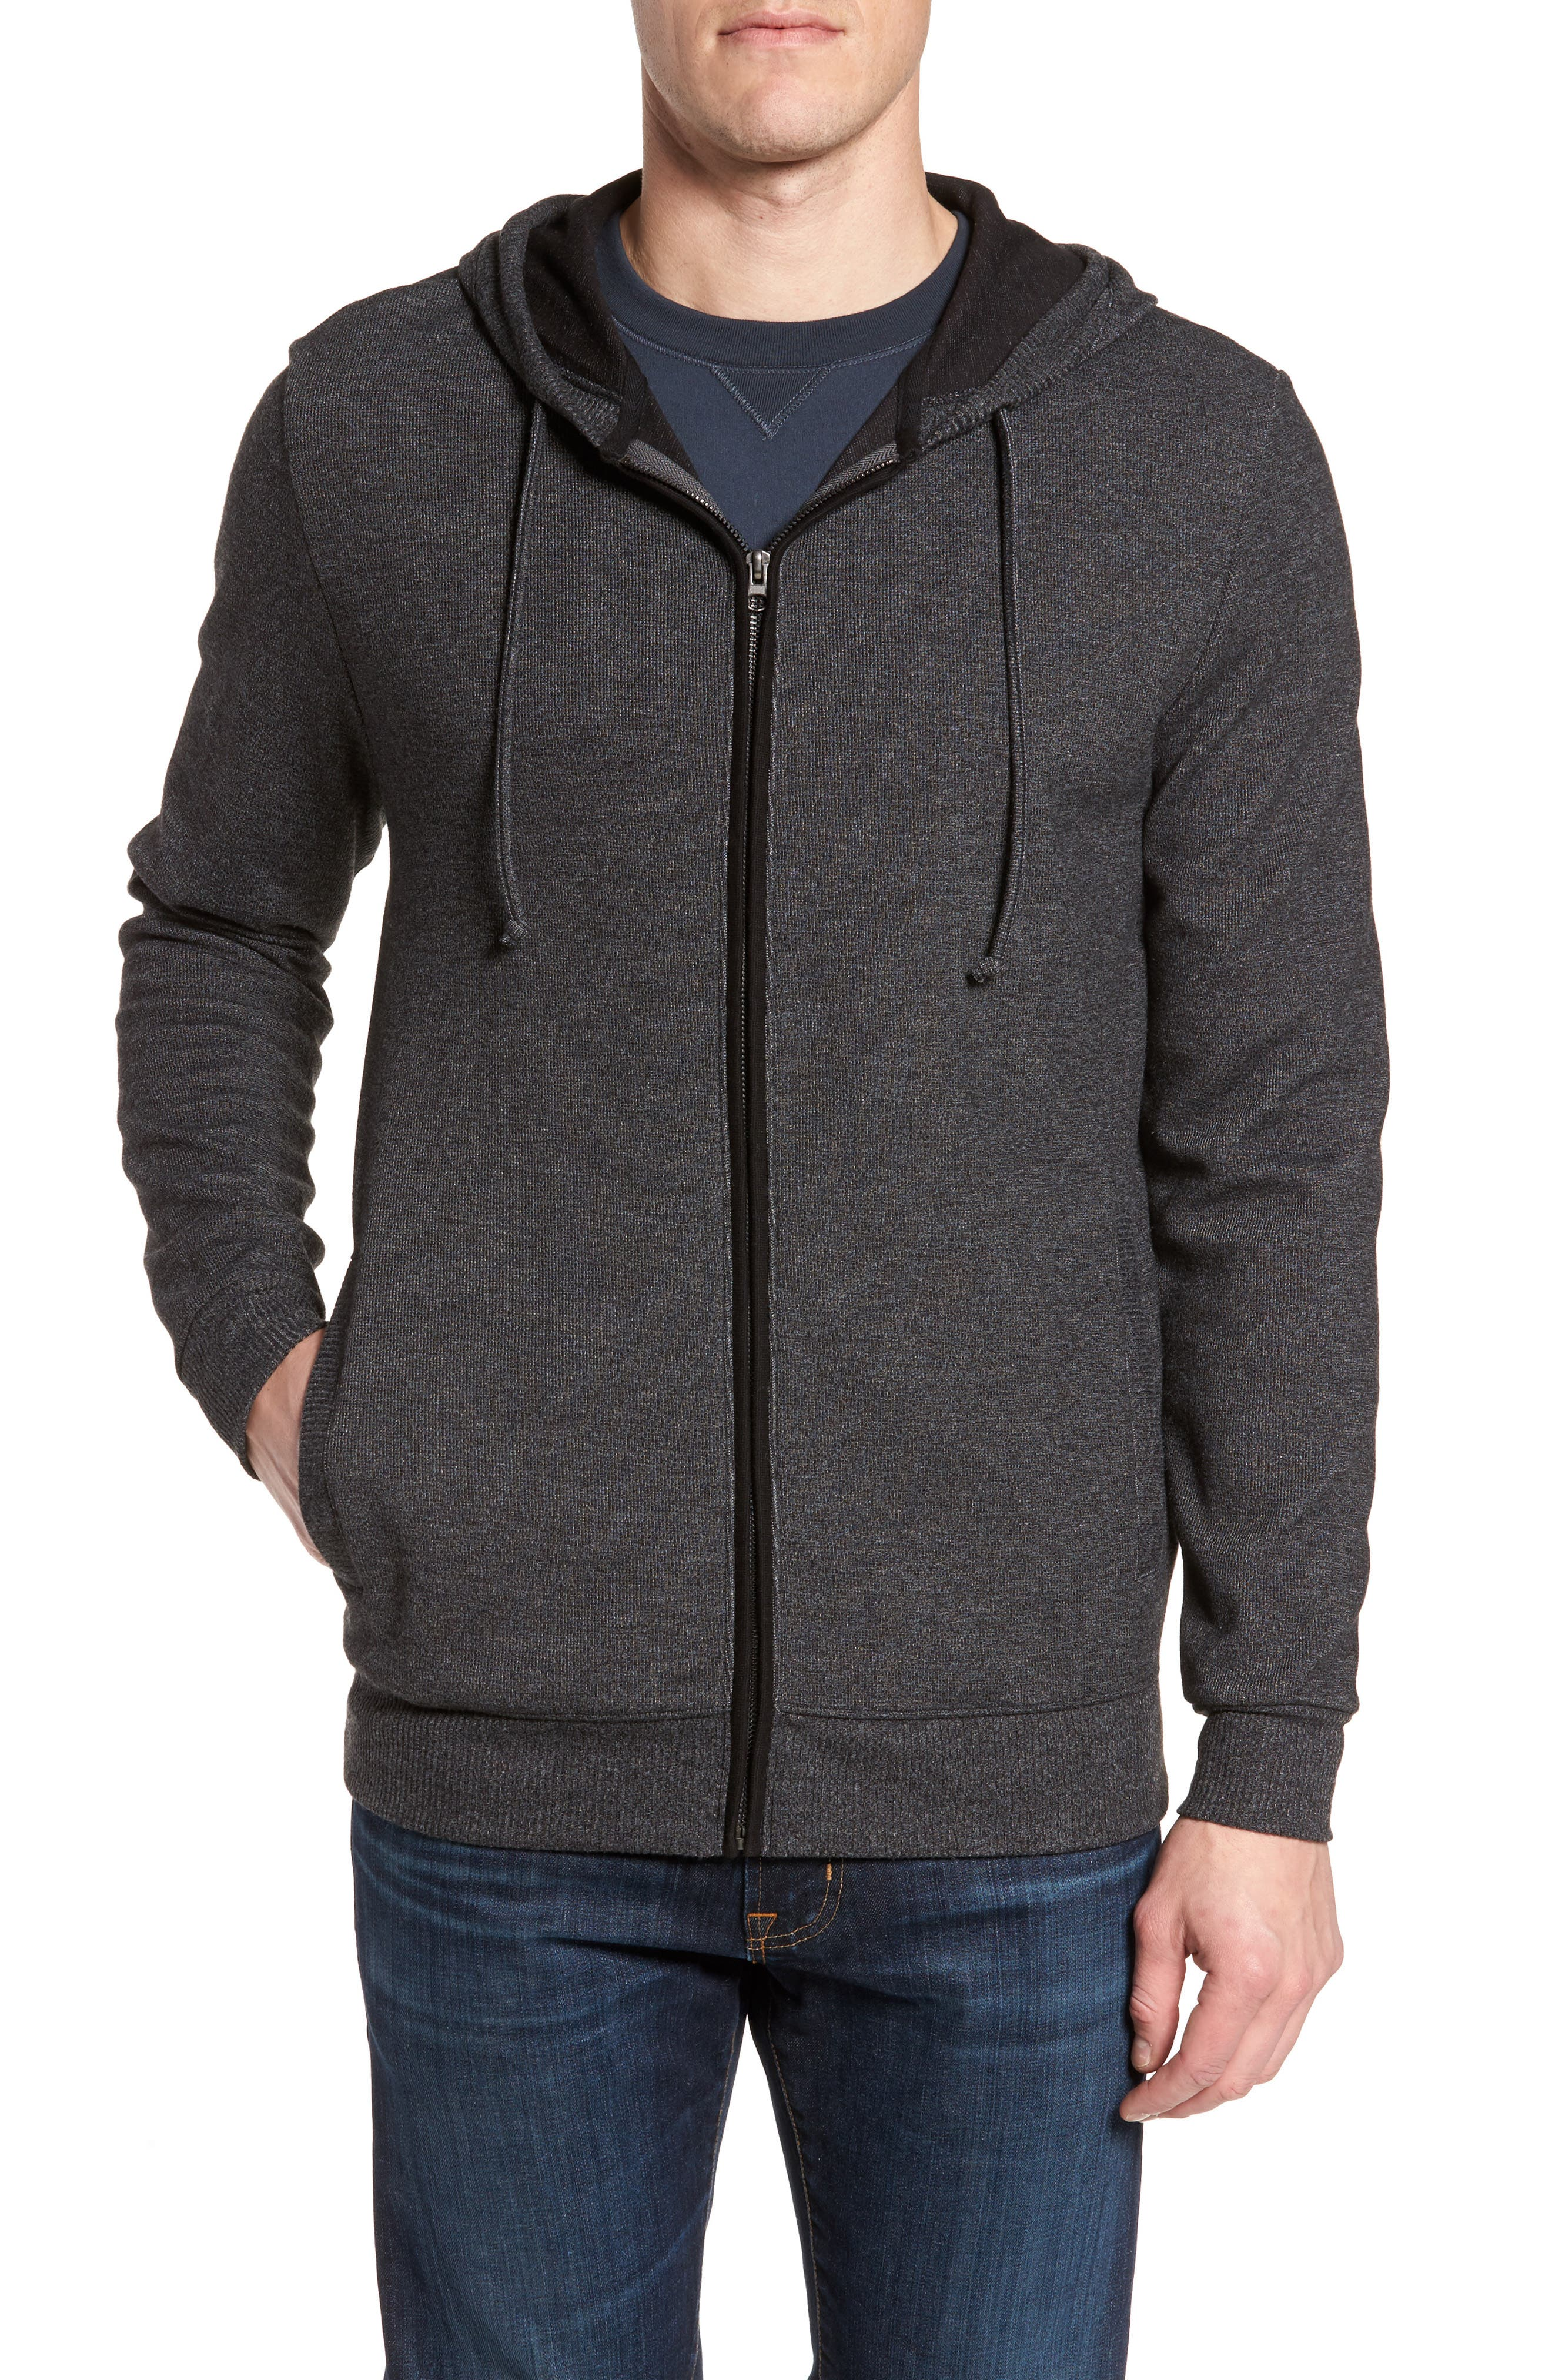 Snare Zip Front Hooded Cardigan,                         Main,                         color, 001